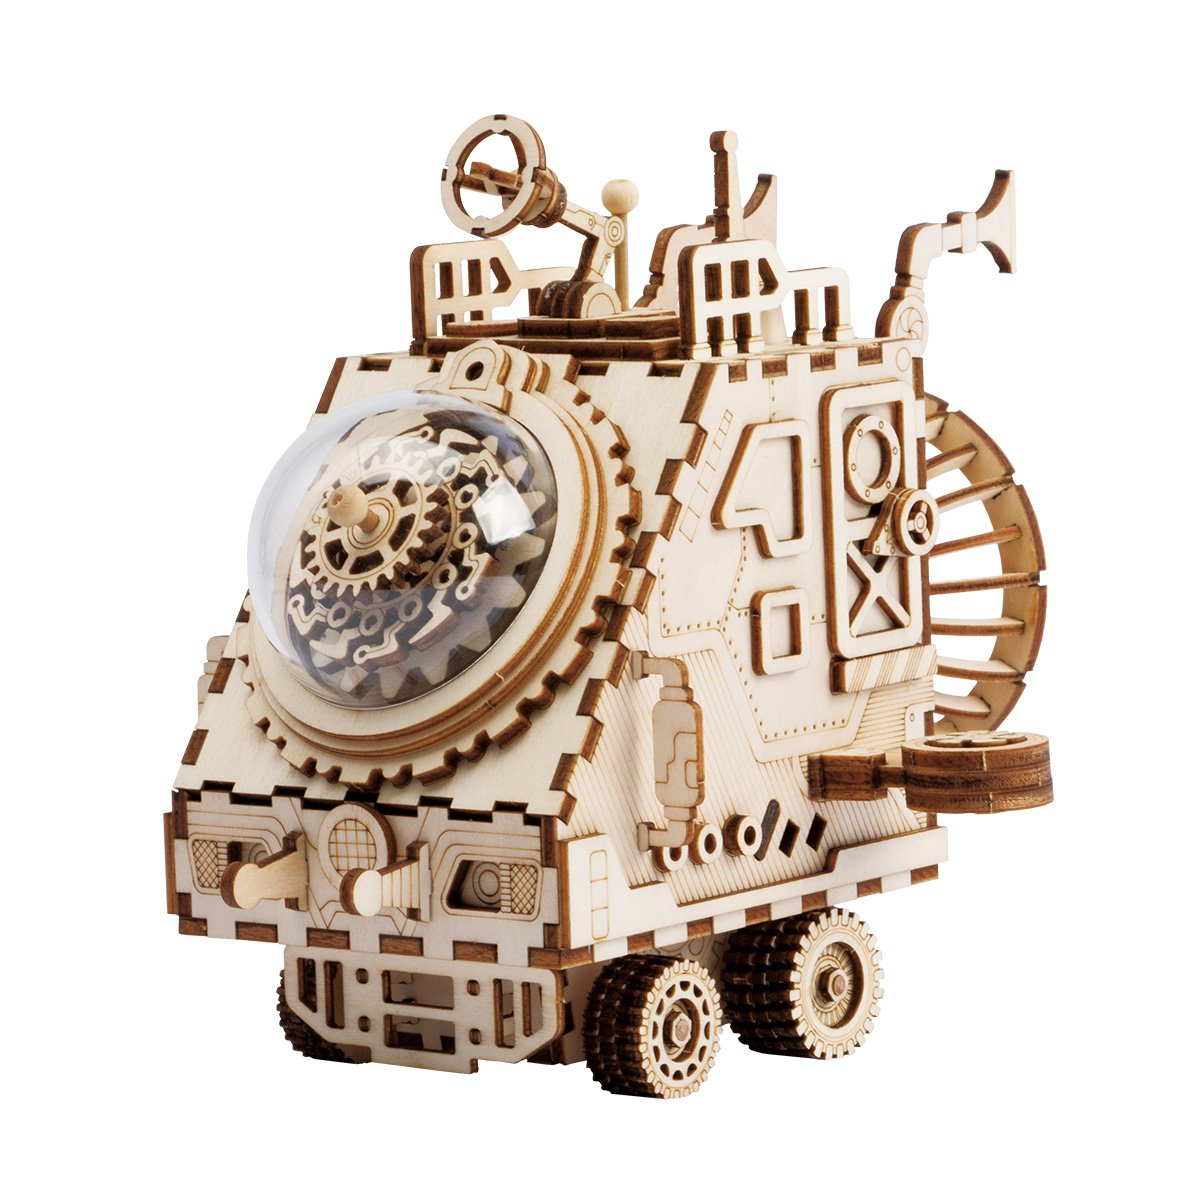 ROKR 3D Wooden Music Box Machinarium-Laser Cut Model Kits-DIY Rabbit Toy-Creative Birthday Christmas for Boys and Girls